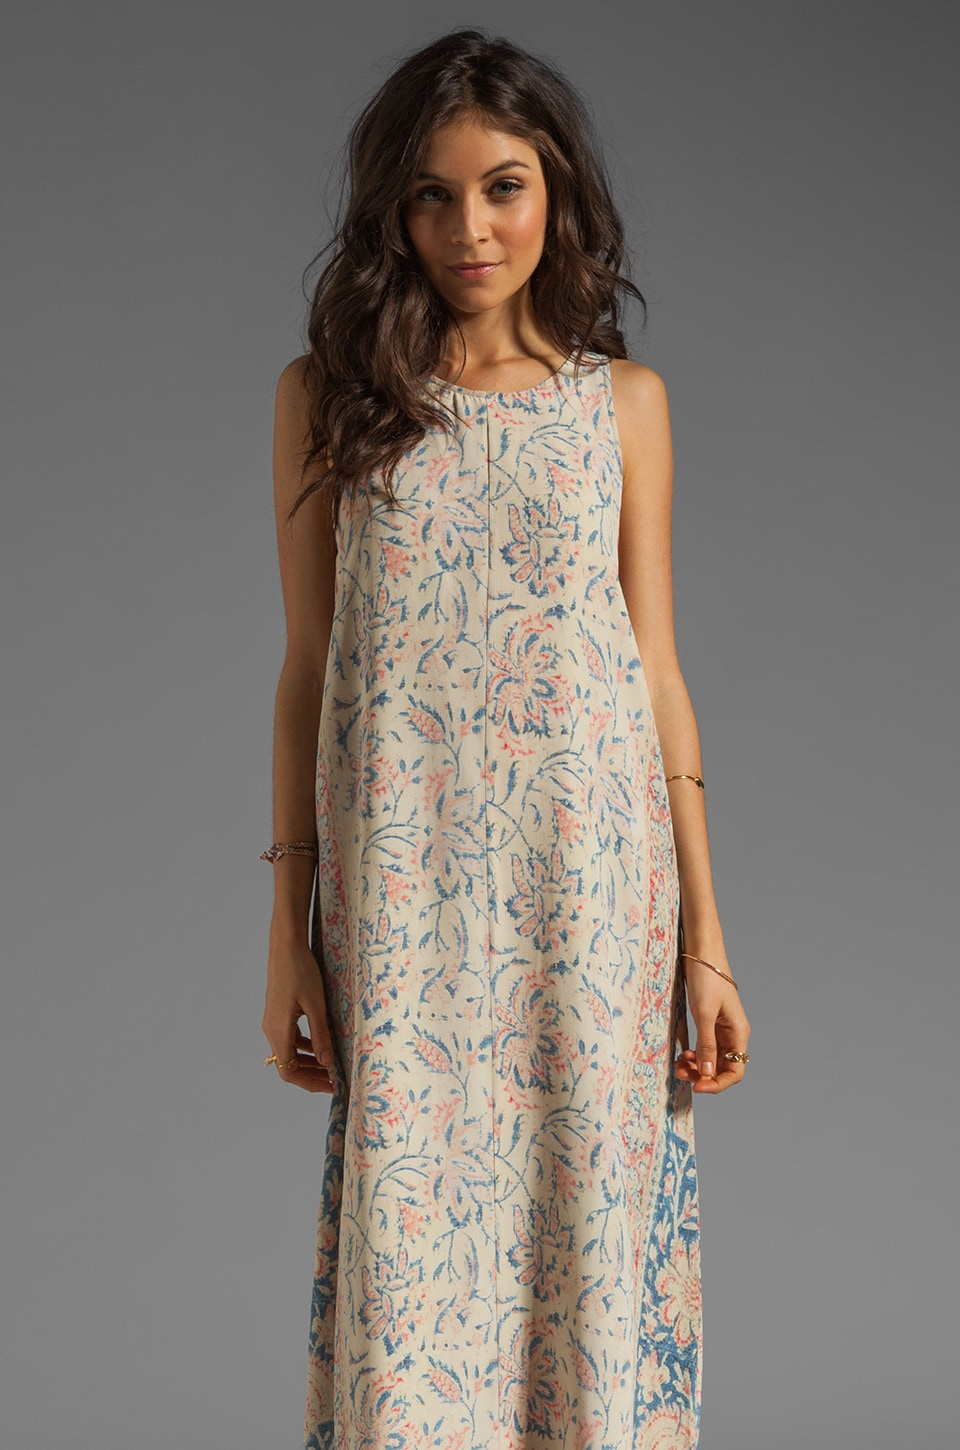 Chaser Vintage Tapestry Silk Tank Maxi Dress with Lace-Up Back Detailing in Sand Washed